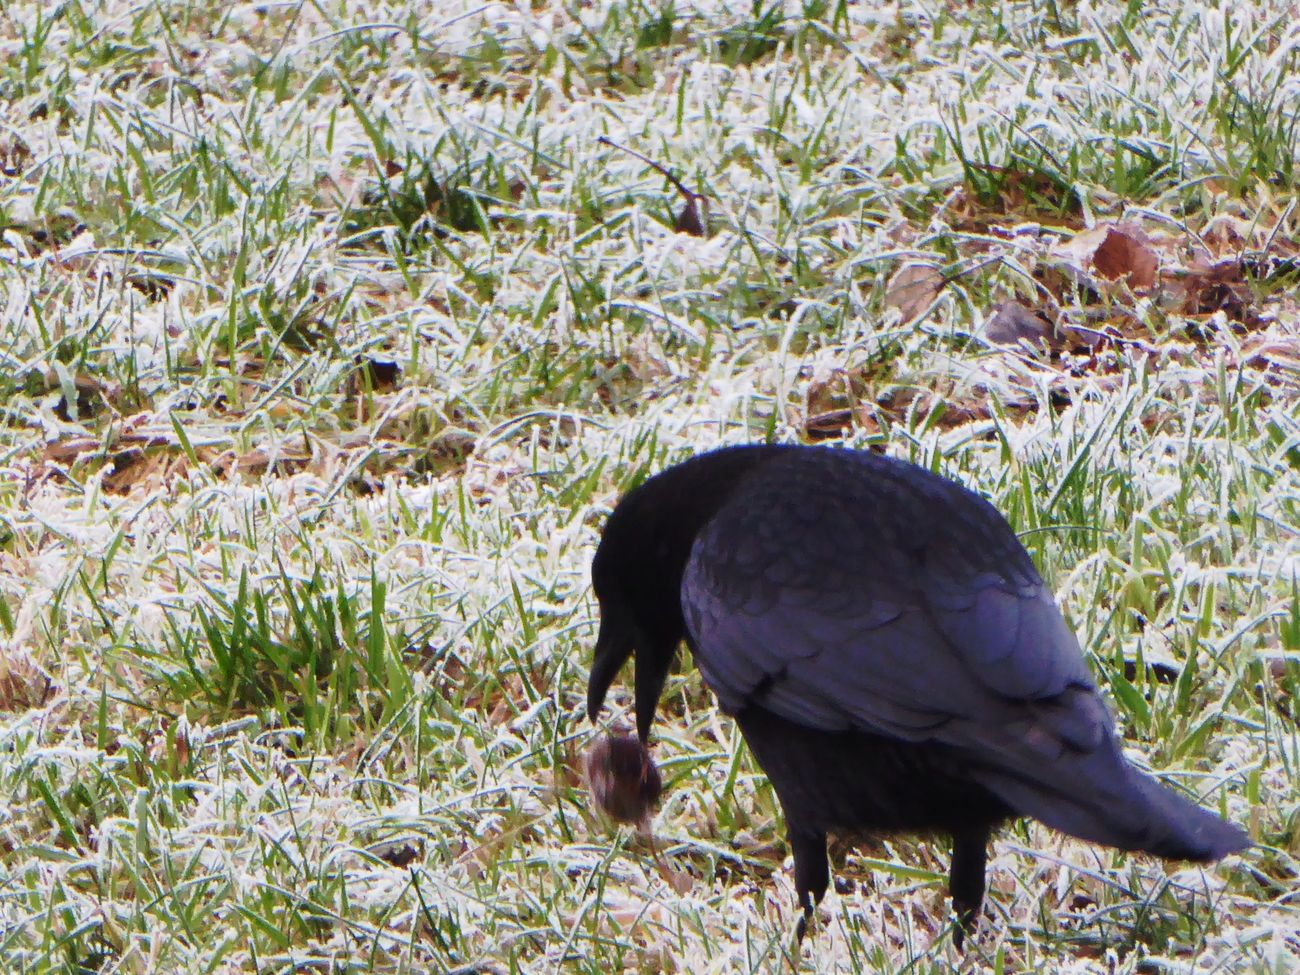 Crow Playing Animals In The Wild Animal Themes For My Friends 😍😘🎁 Frosty ⛄ Cold Outside ❄⛄  Nature Winter Wintertime ⛄ Beauty In My Every Day Life On My Way To Work Close-up Enjoying The View Animals In The Wild Animal Wildlife Crowlovers